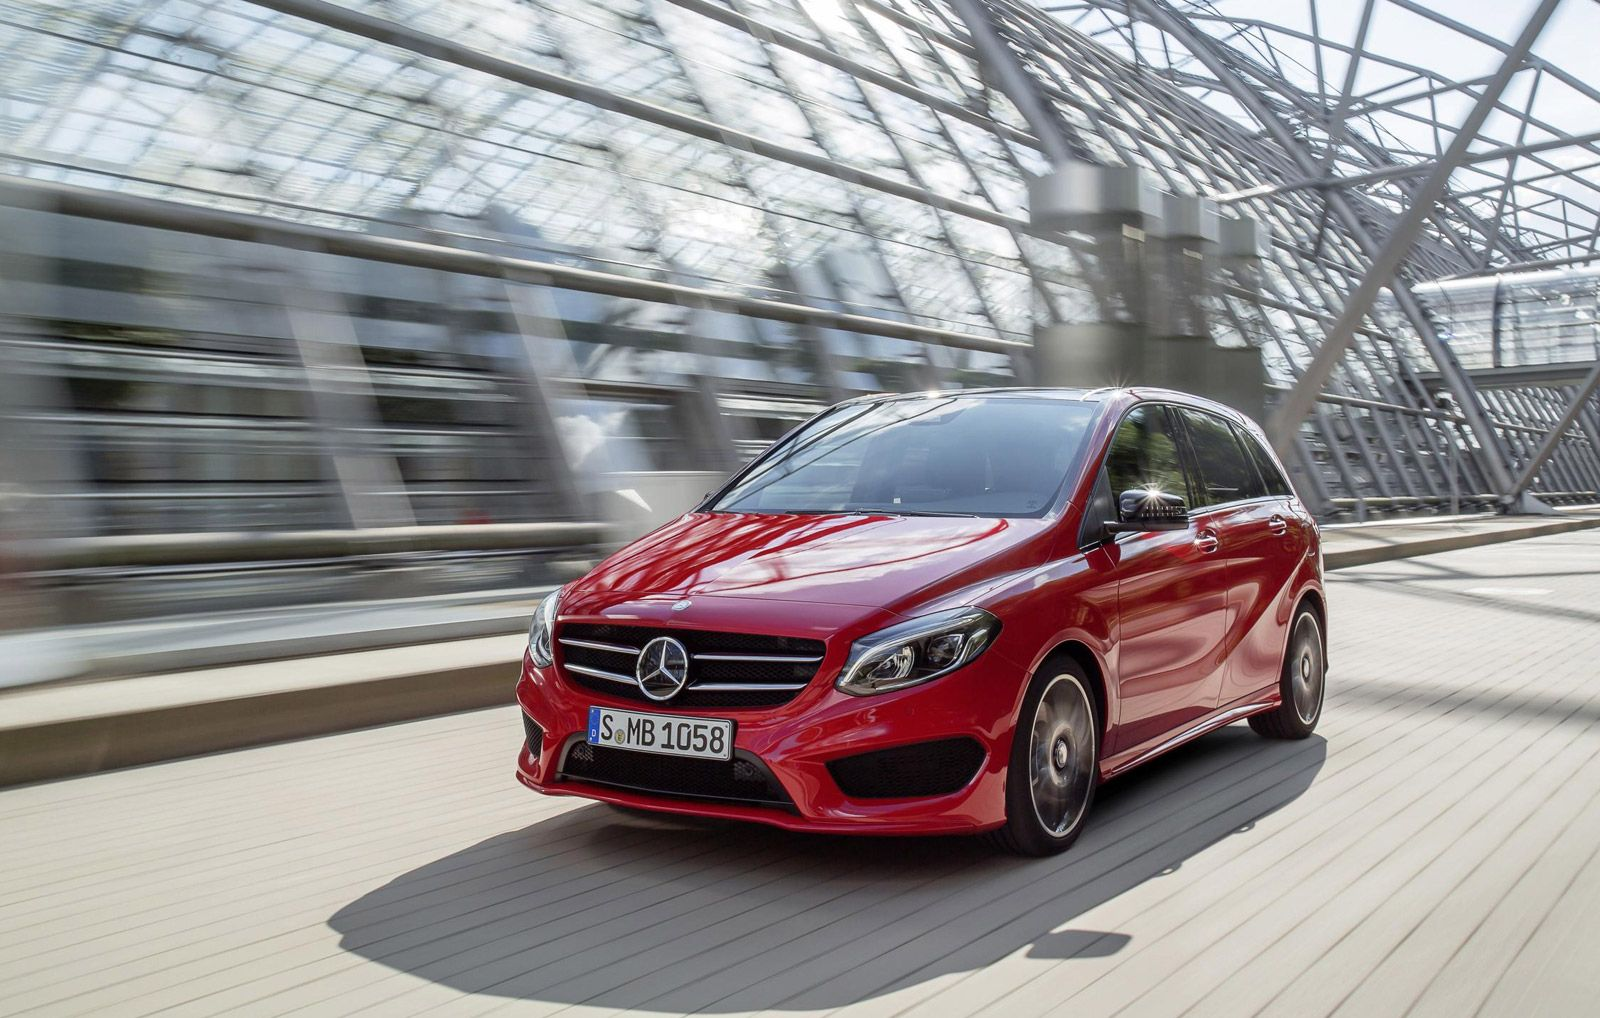 2015 mercedes benz b class gets sporty new look and more tech mercedes b class mercedes benz mercedes pinterest